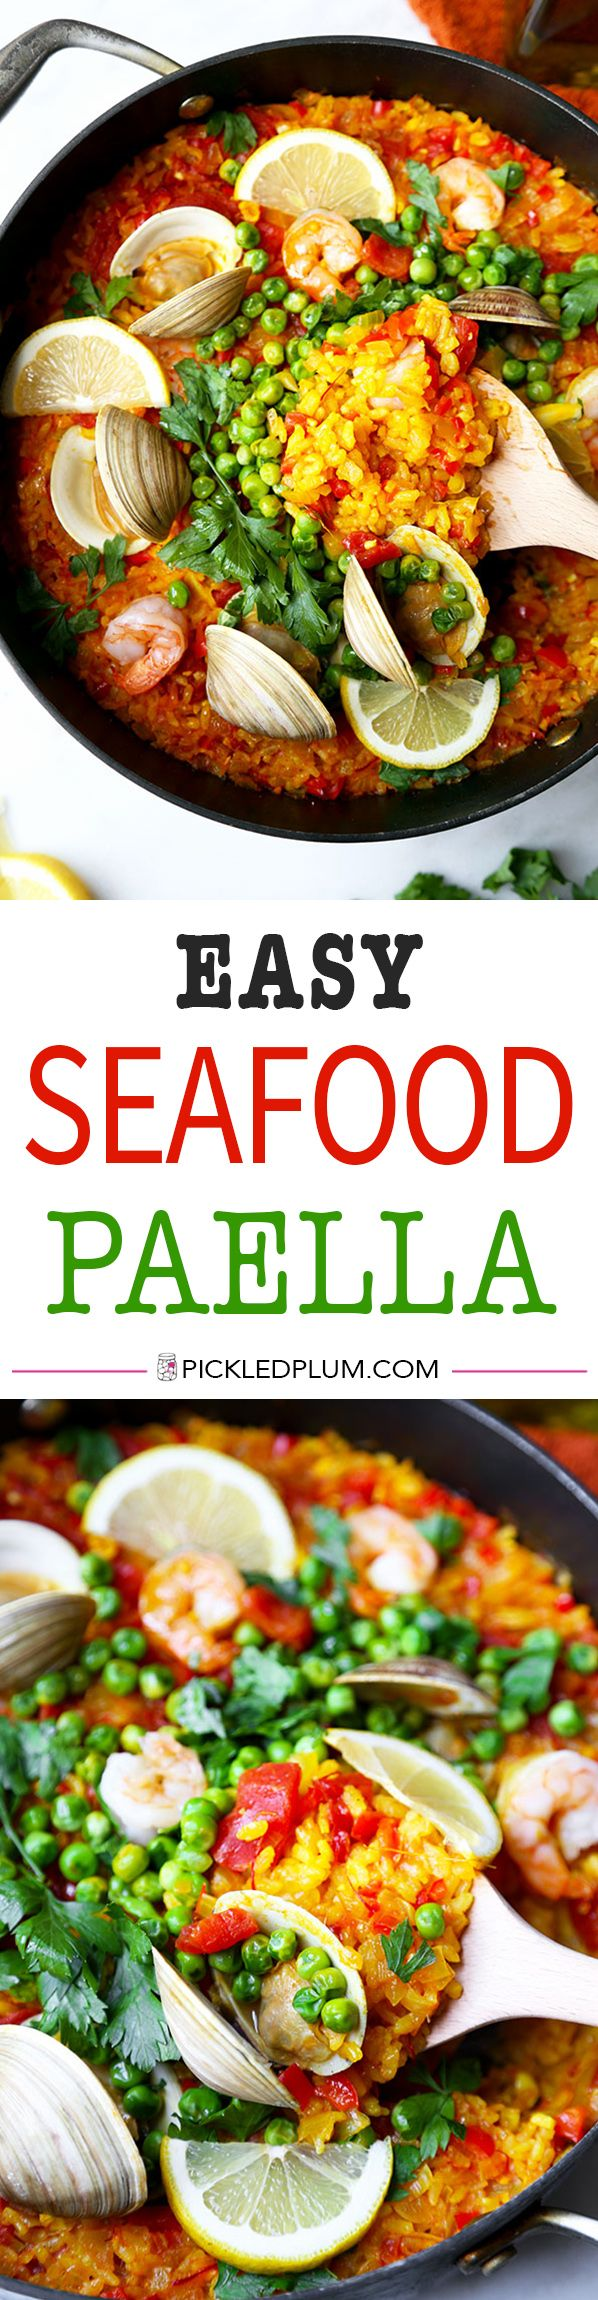 Easy Seafood Paella - A smoky and Easy Seafood Paella Recipe that looks and tastes like a sun-soaked summer on the Mediterranean in Spain! Recipe, seafood, rice, main, dinner | pickledplum.com